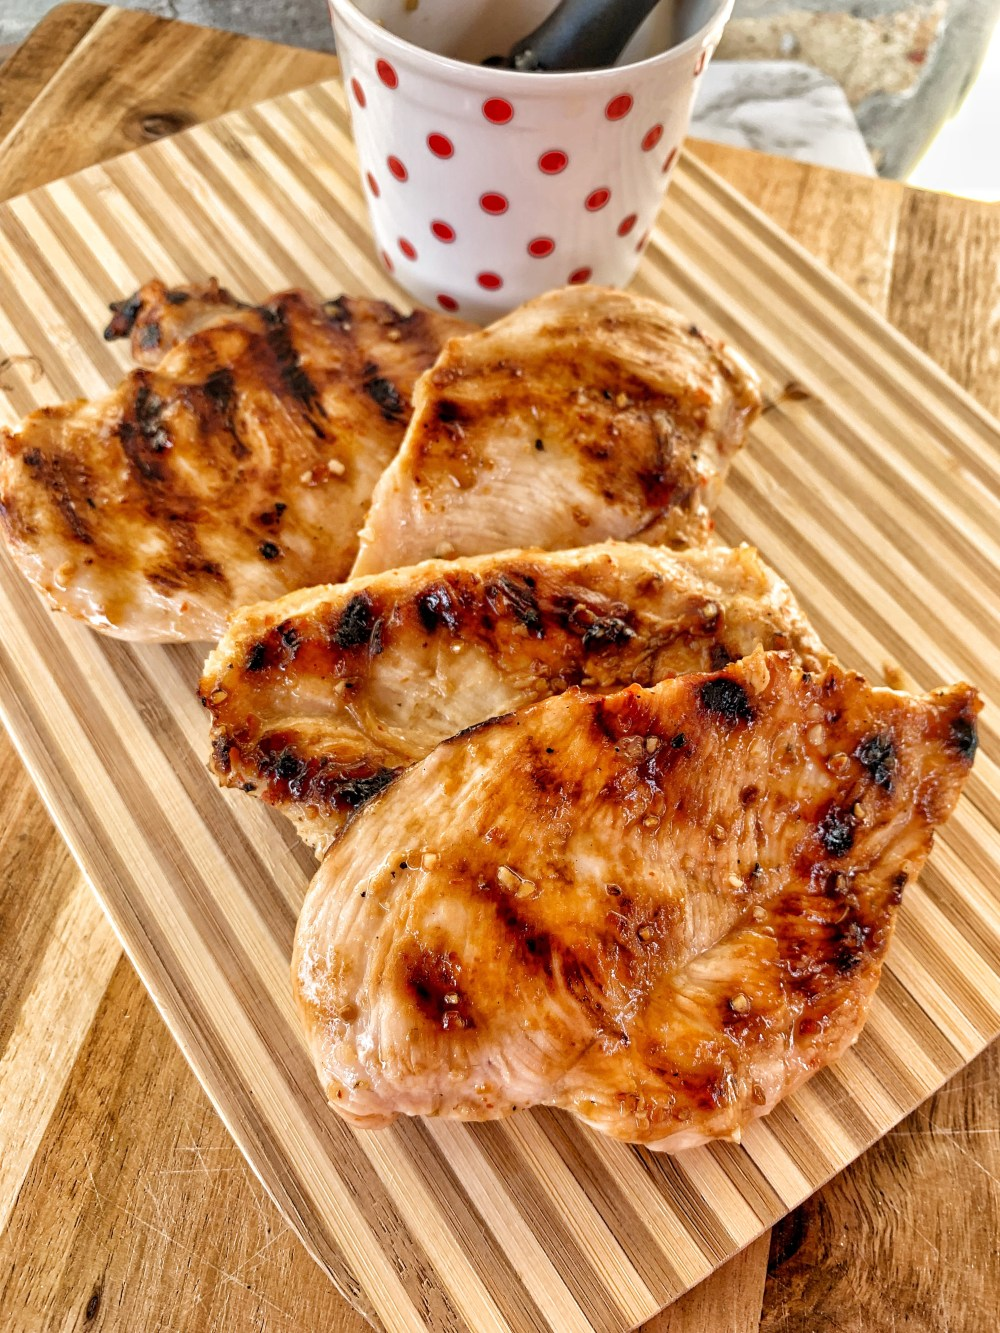 3 cooked chicken breasts with grill marks and a white cup with red polak dots that has italian dressing in it.